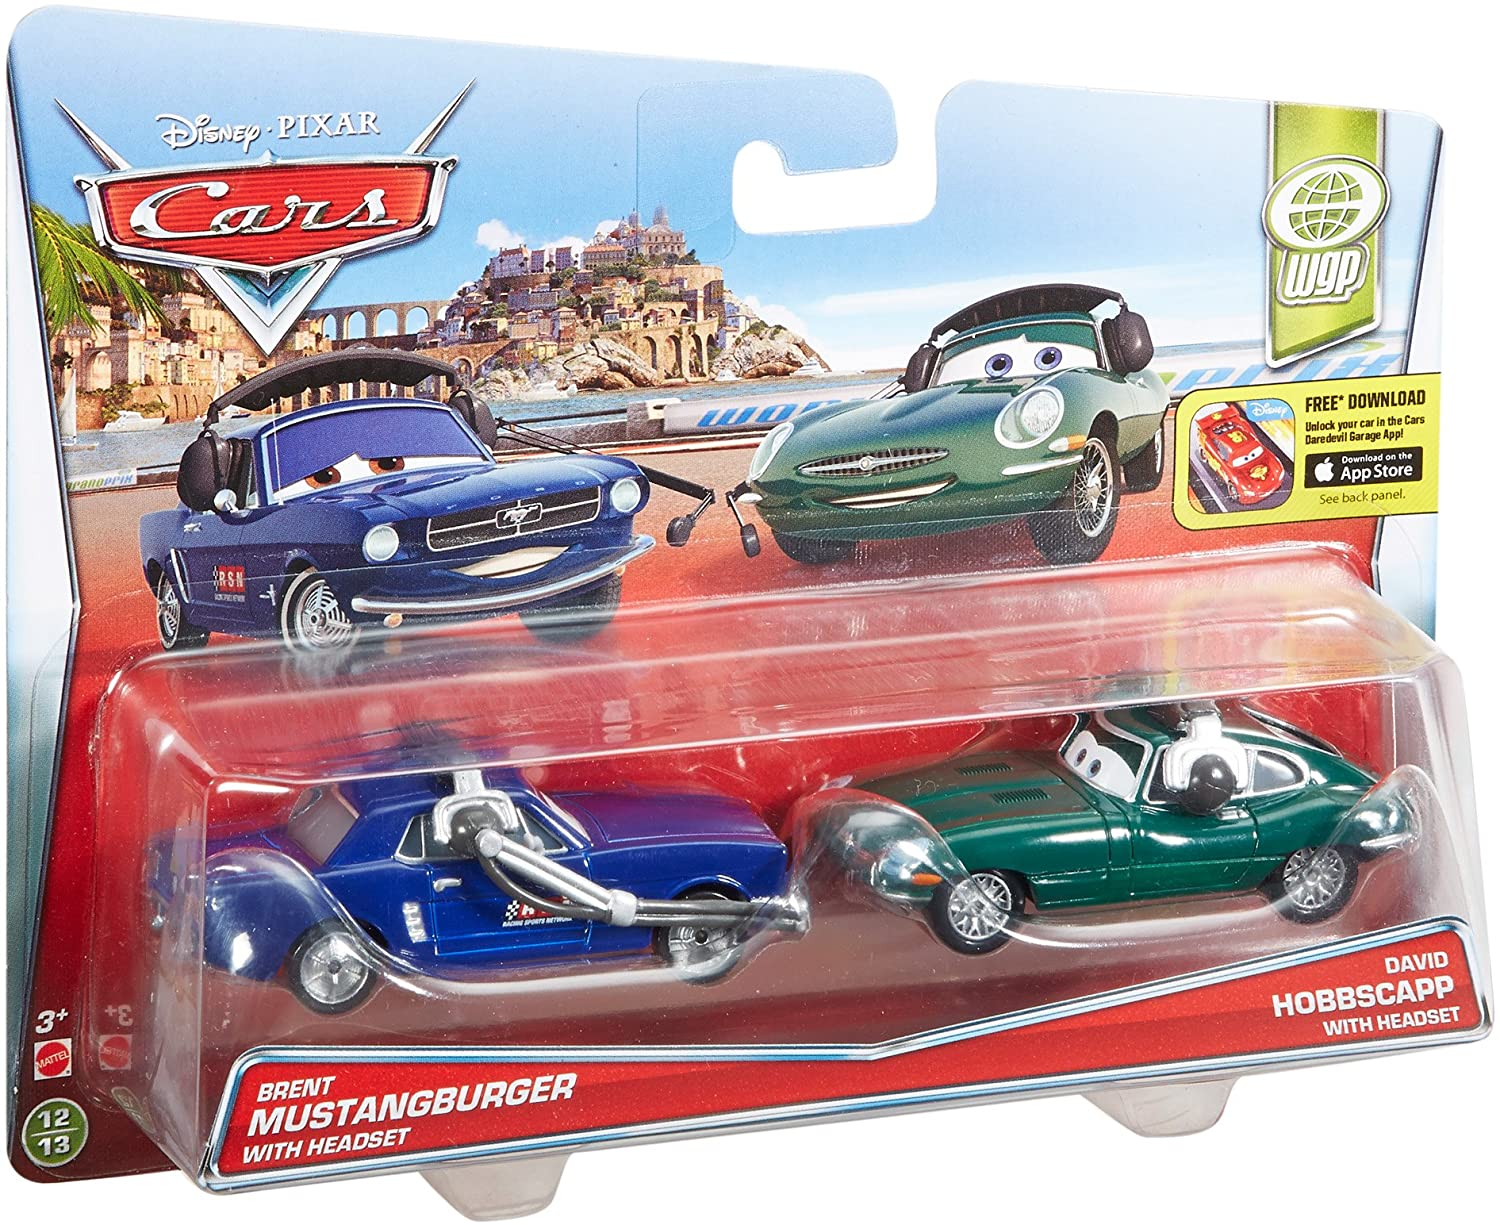 Disney Cars - Brent Mustangburger with Headset and David Hobscapp with Headset Vehicle 2-Pack